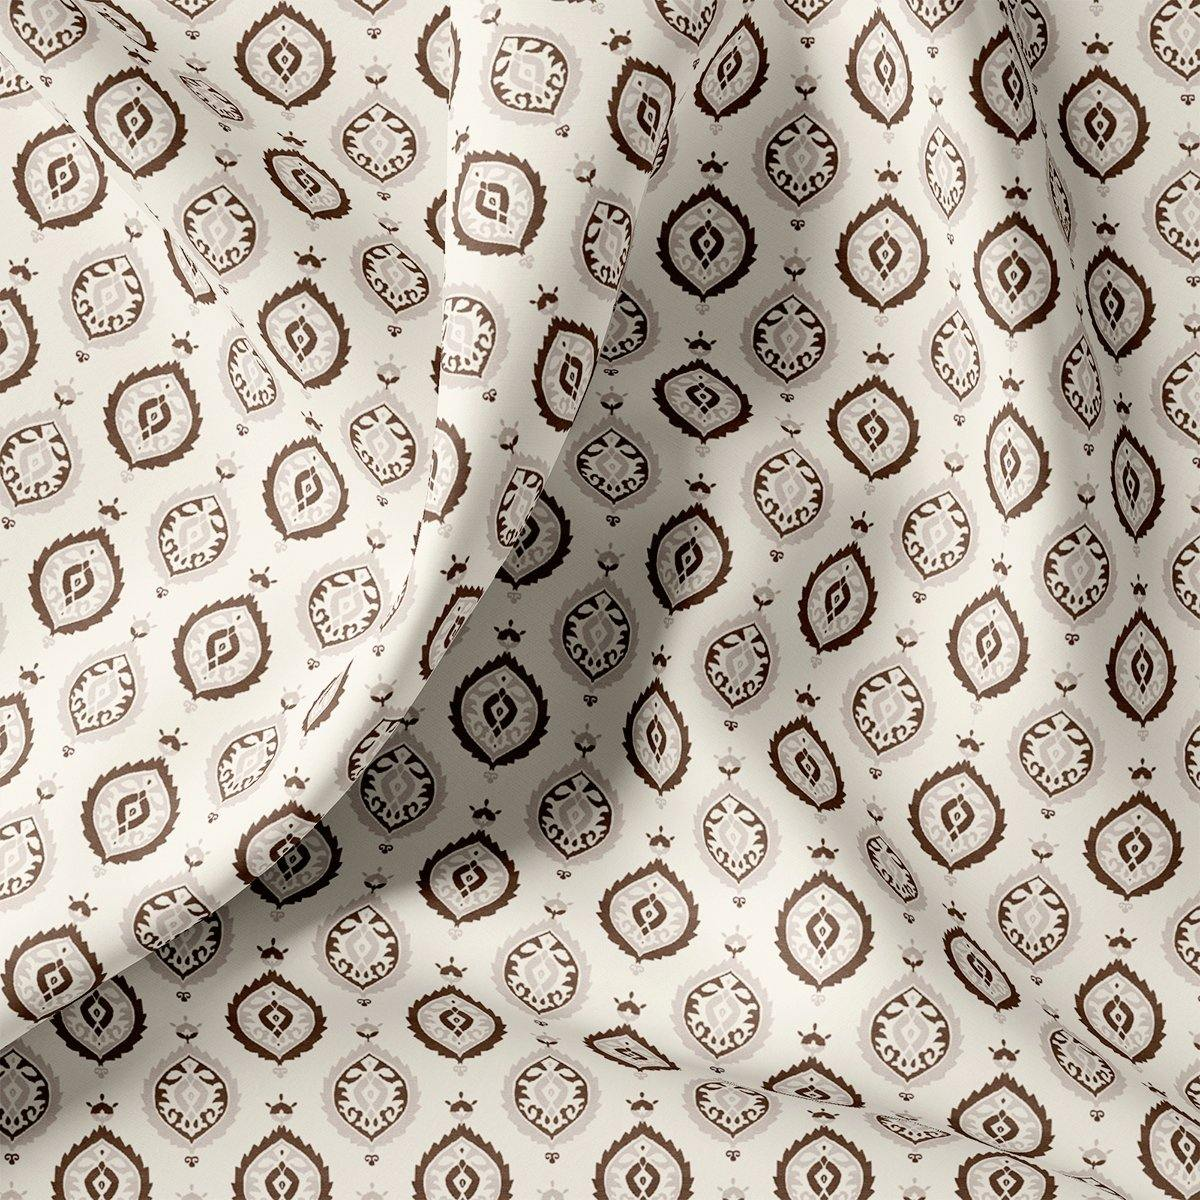 Small Abstract Motif Digital Printed Fabric - FAB VOGUE Studio. Shop Fabric @ www.fabvoguestudio.com